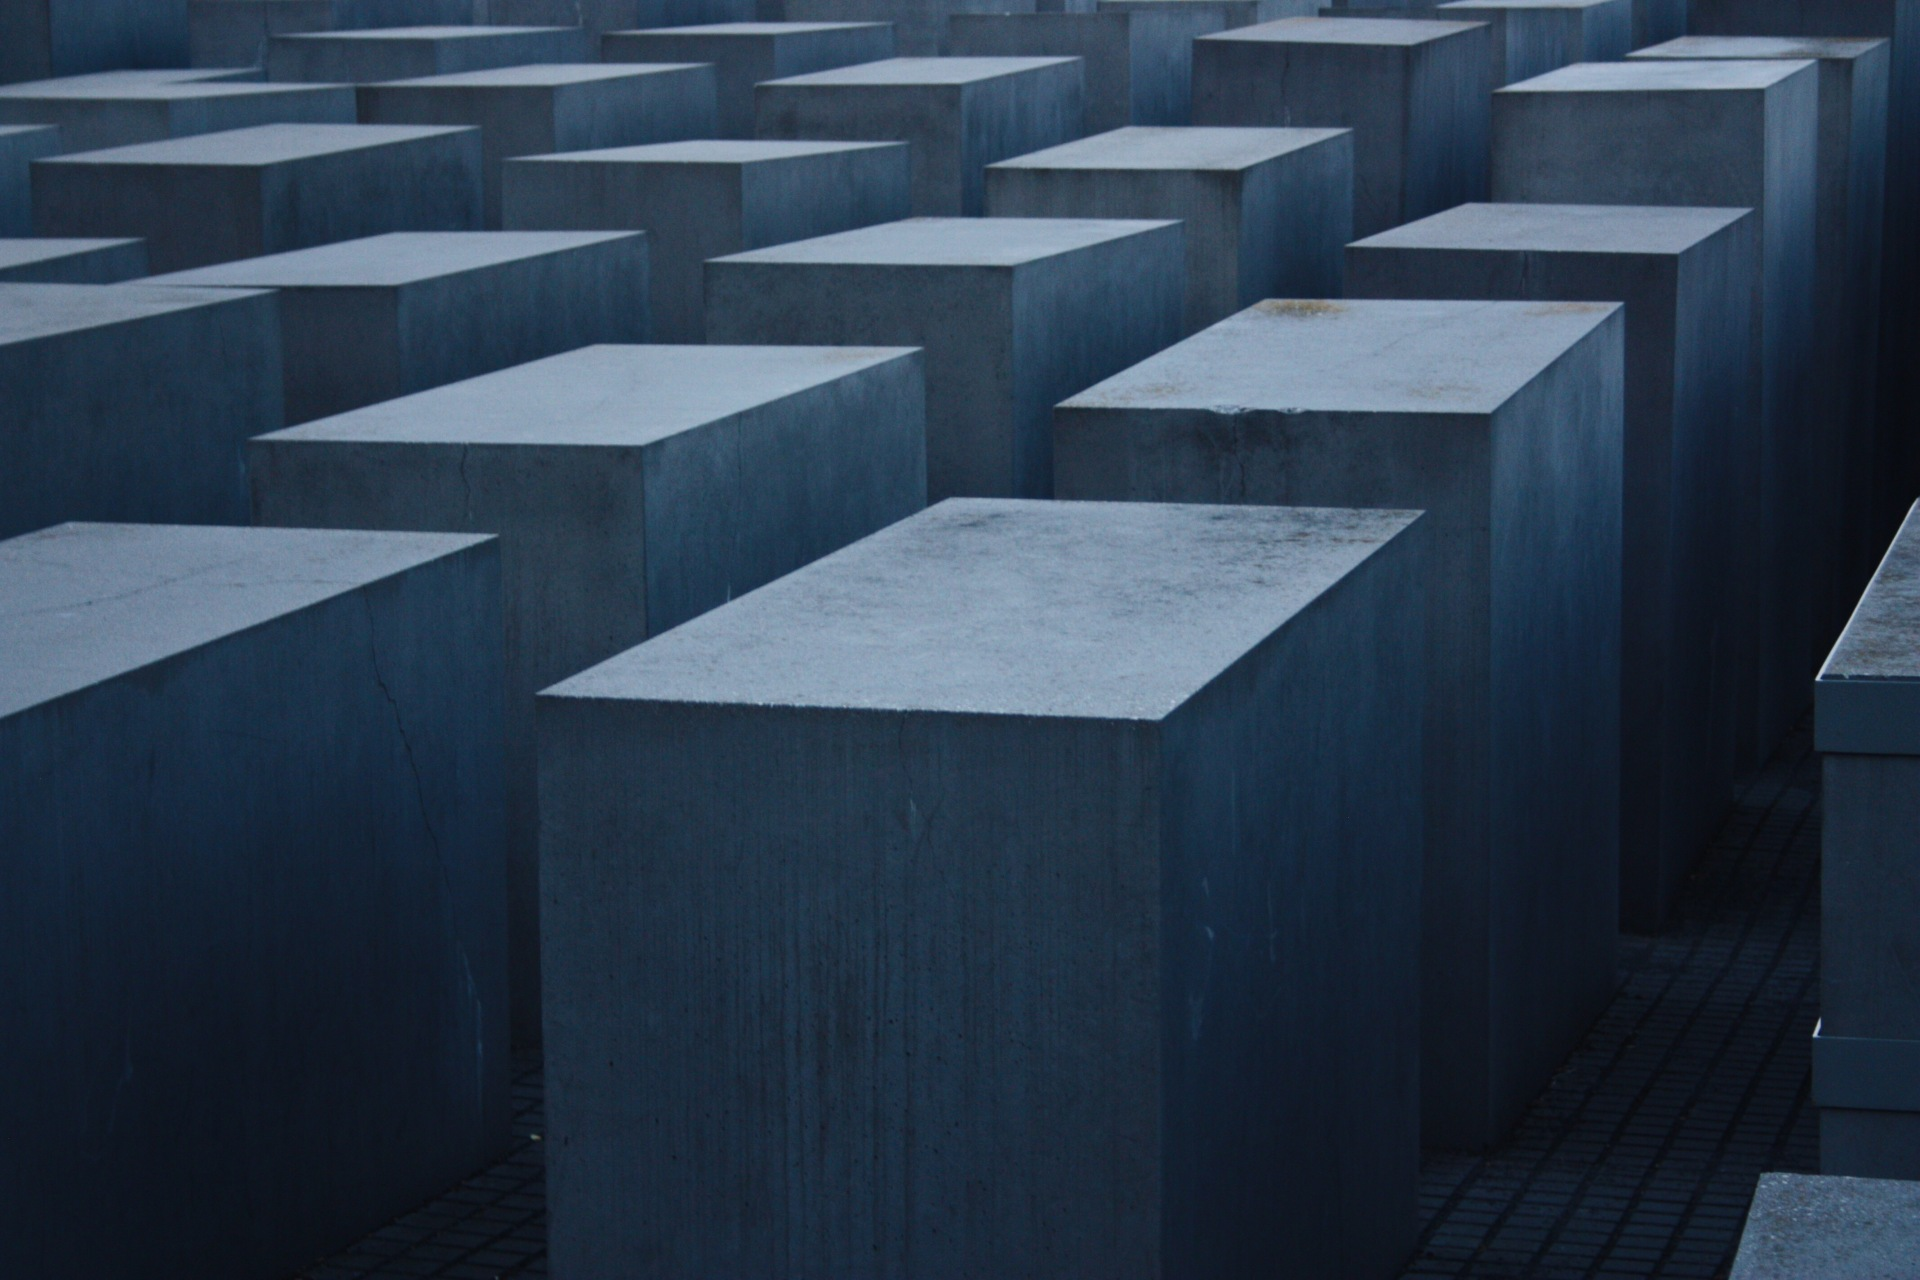 Berlin Tourist Attractions Memorial to the Murdered Jews of Europe